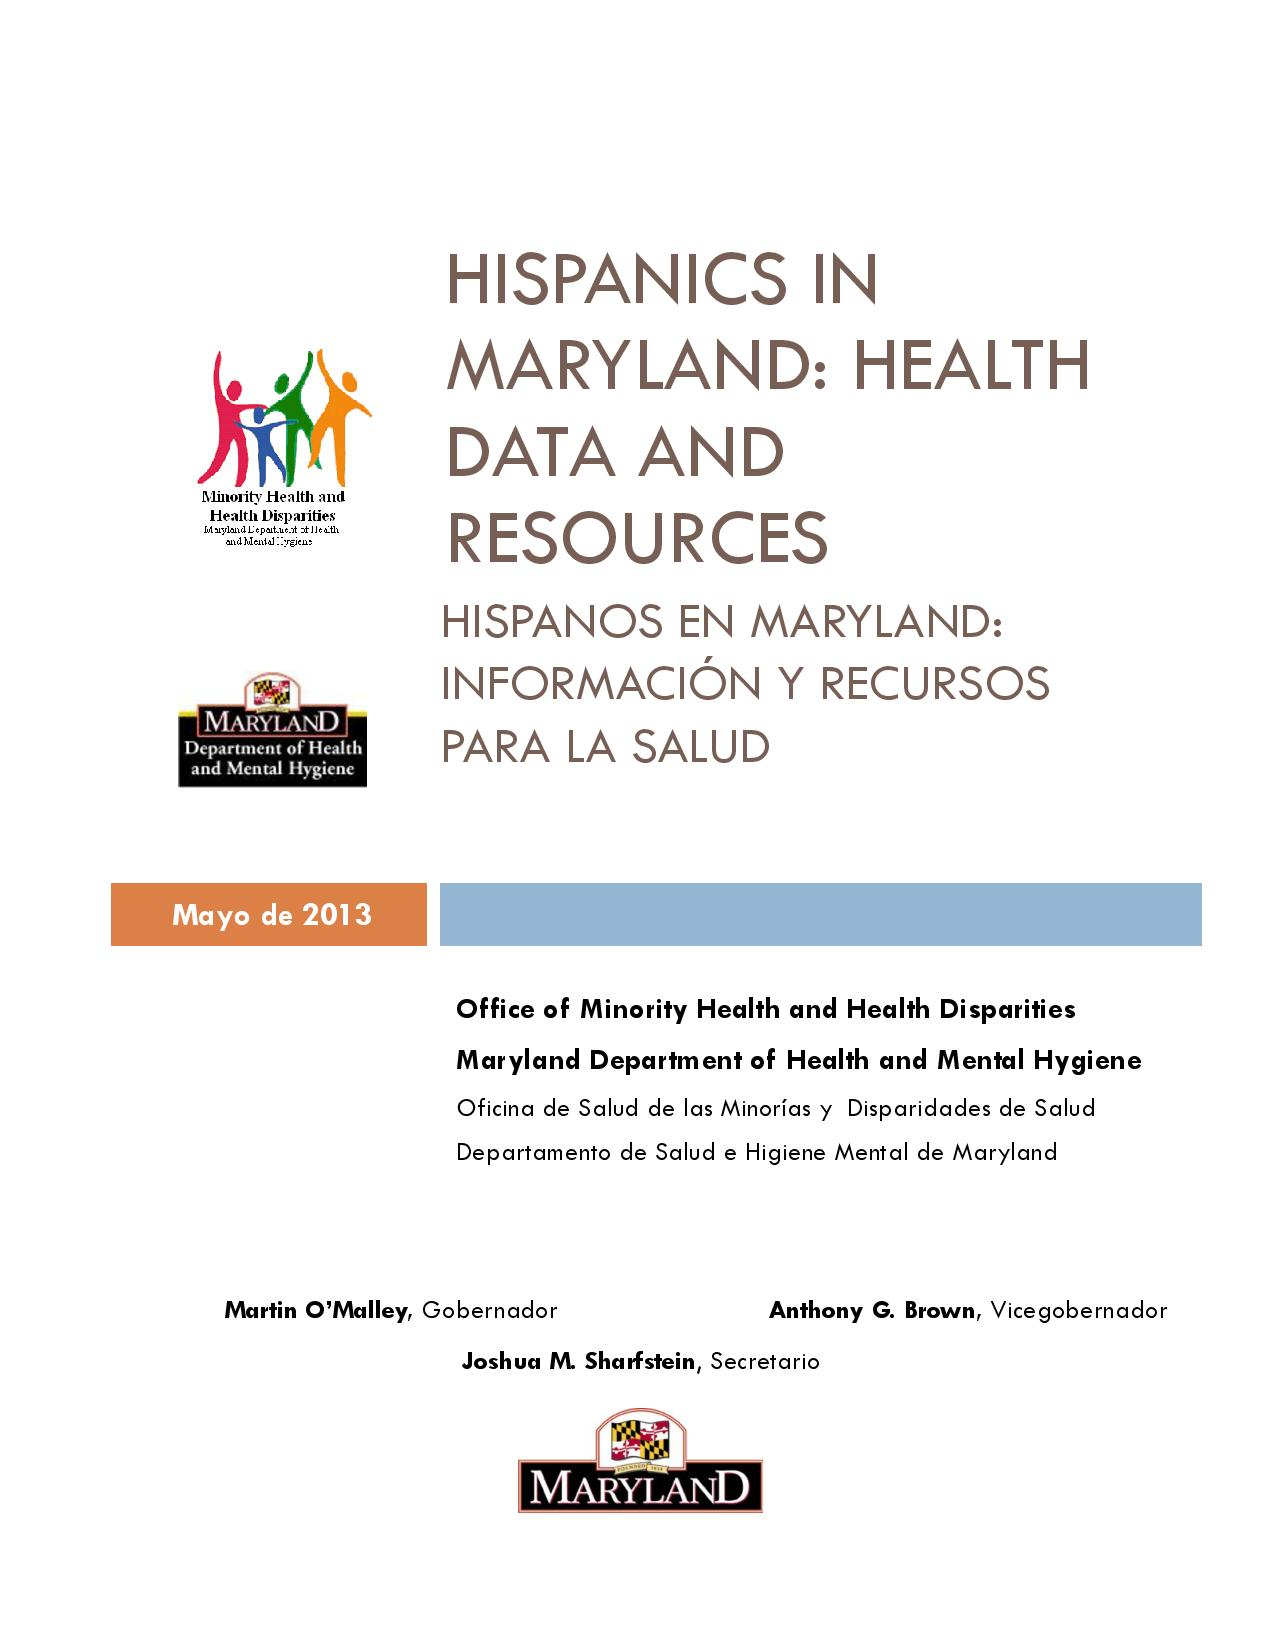 Maryland Hispanic Health Disparity Data_Spanish_071913-page-001.jpg